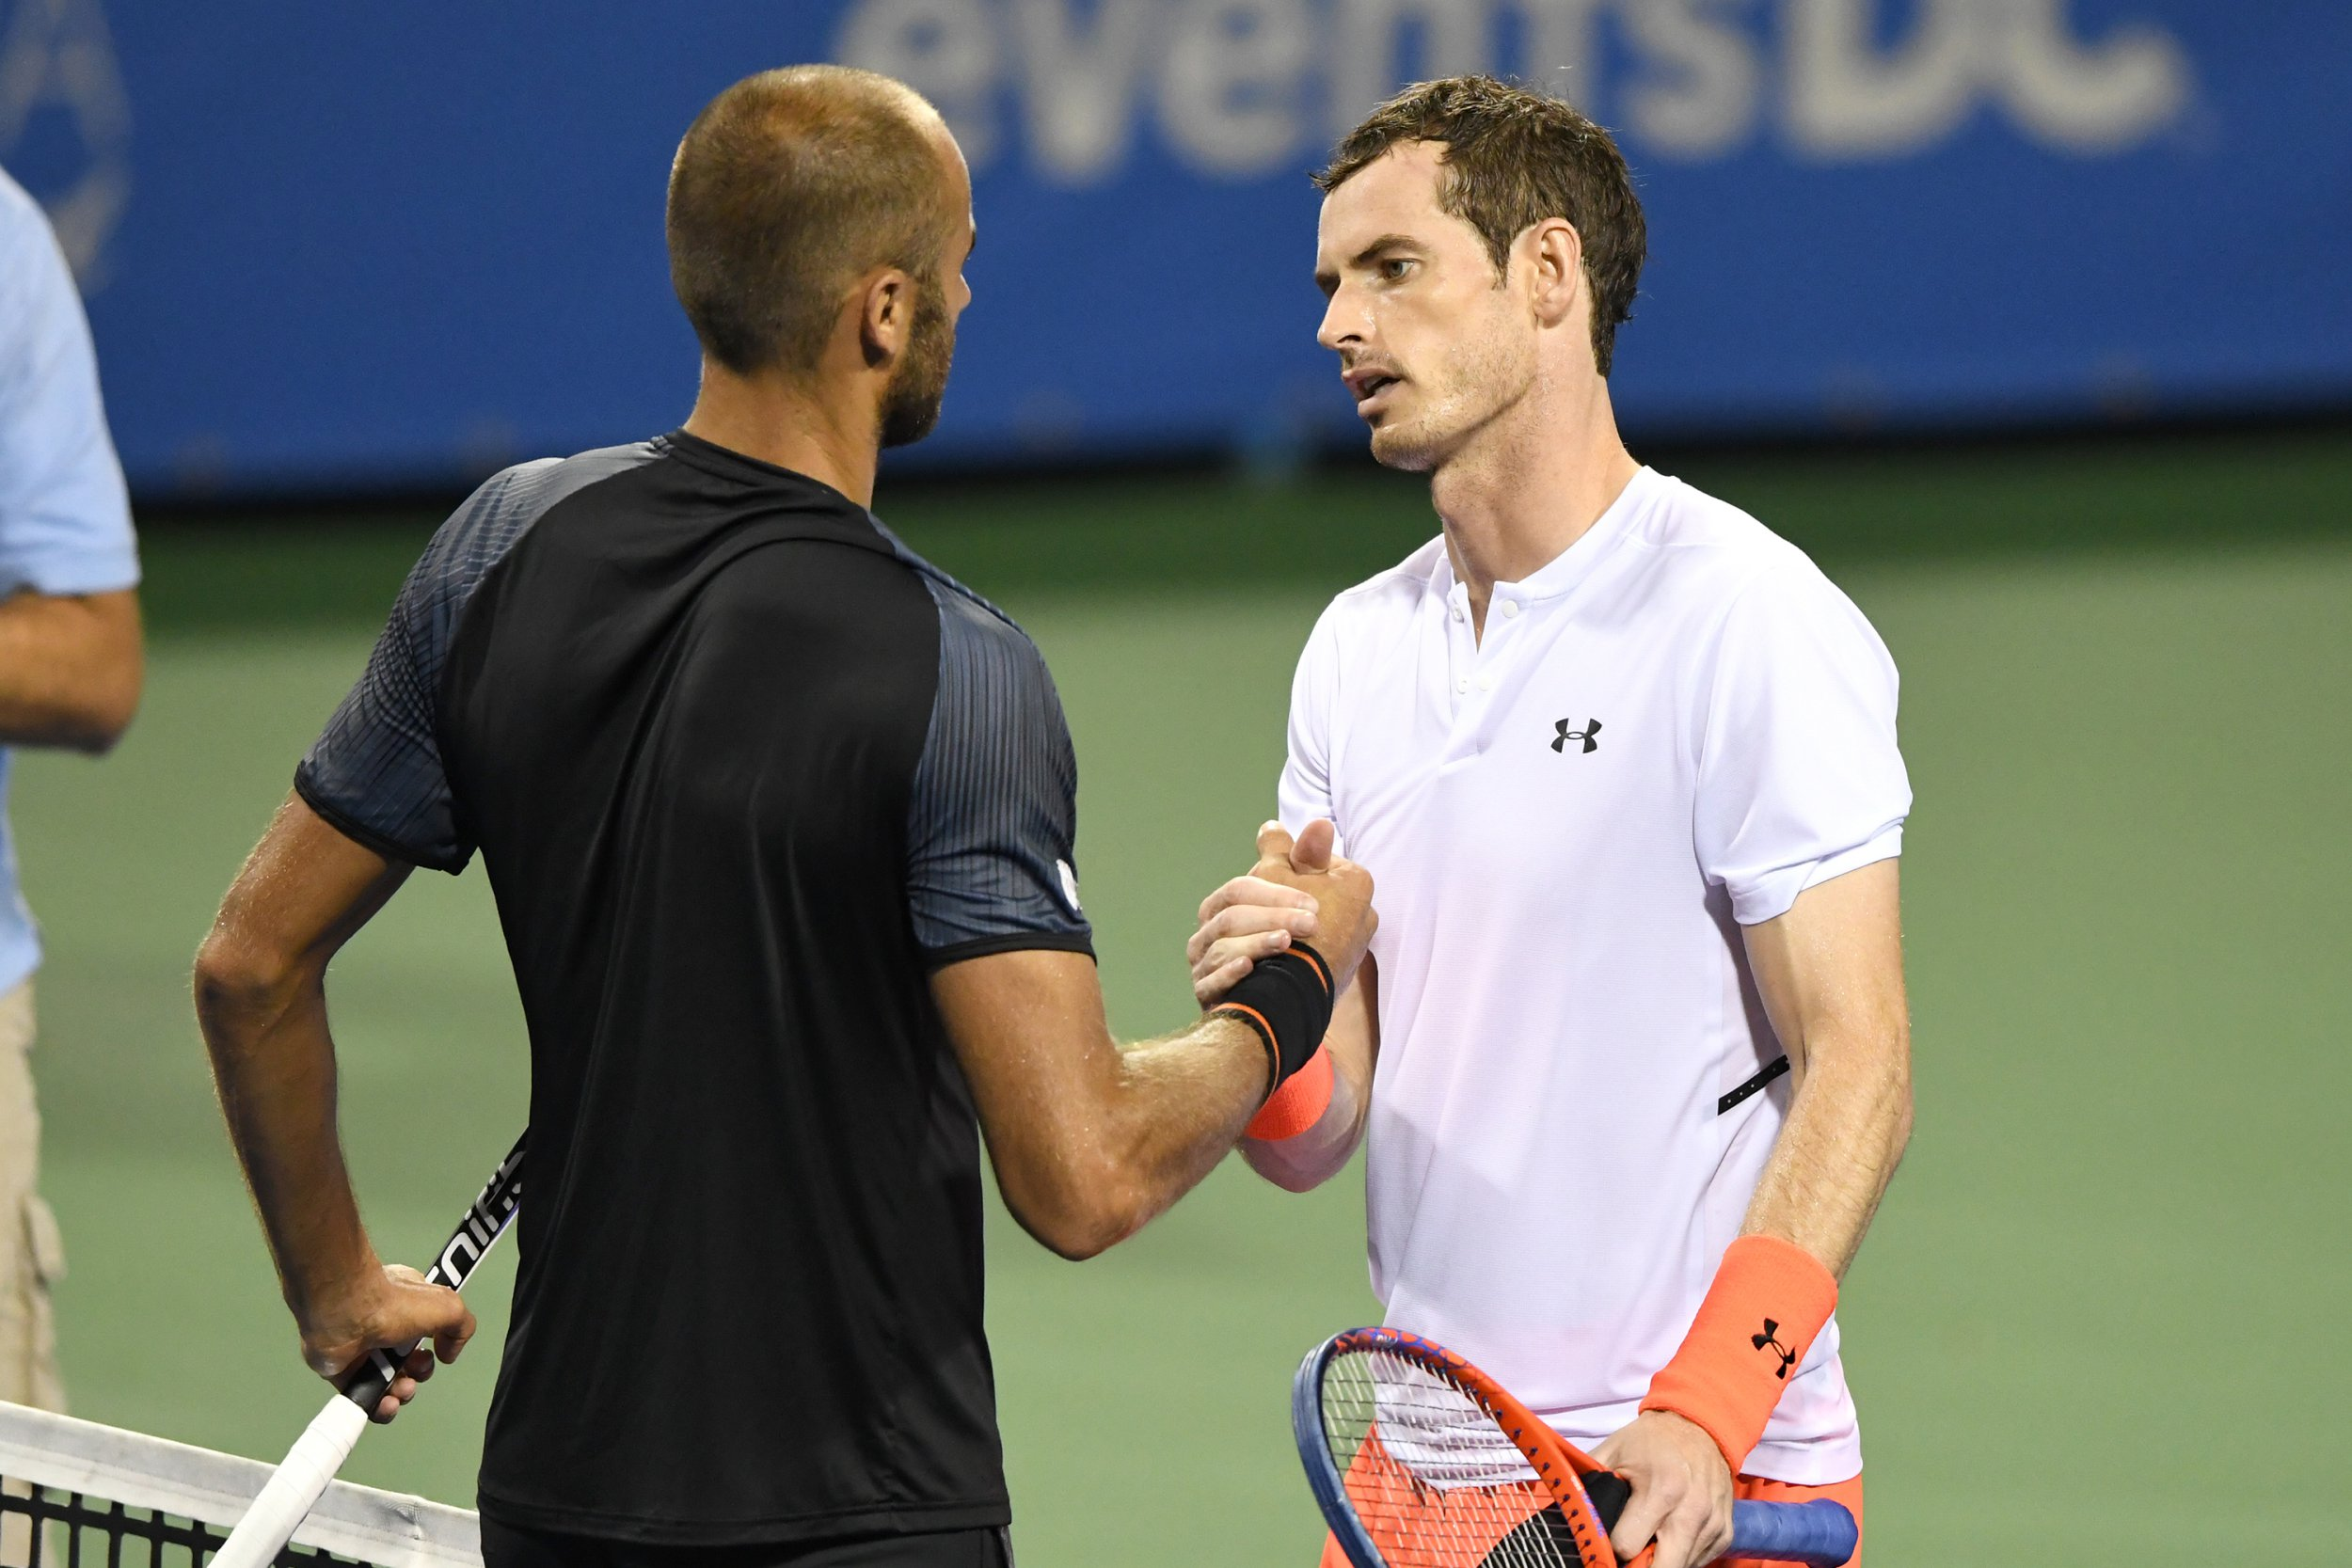 WASHINGTON, DC - AUGUST 02: Andy Murray of Great Britain shakes hands with Marius Copil of Romania after winning their match during Day Six of the Citi Open at the Rock Creek Tennis Center on August 2, 2018 in Washington, DC. (Photo by Mitchell Layton/Getty Images)